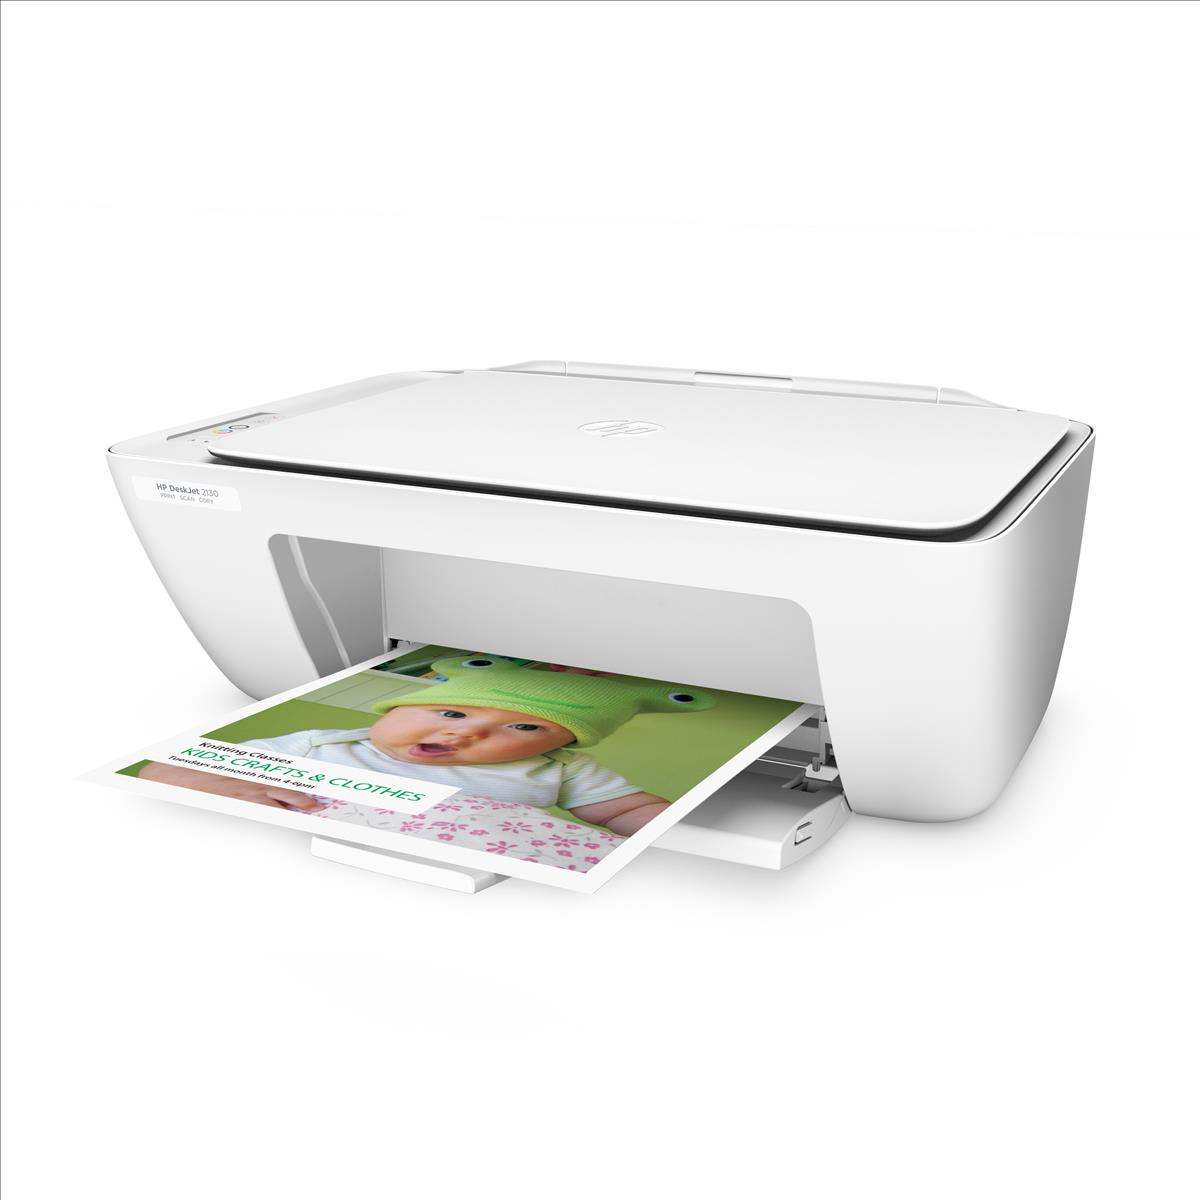 HP-DESKJET-2130--F5S40B--ALL-IN-ONE-IMPRIMANTA-MULTIFUNCTIONALA